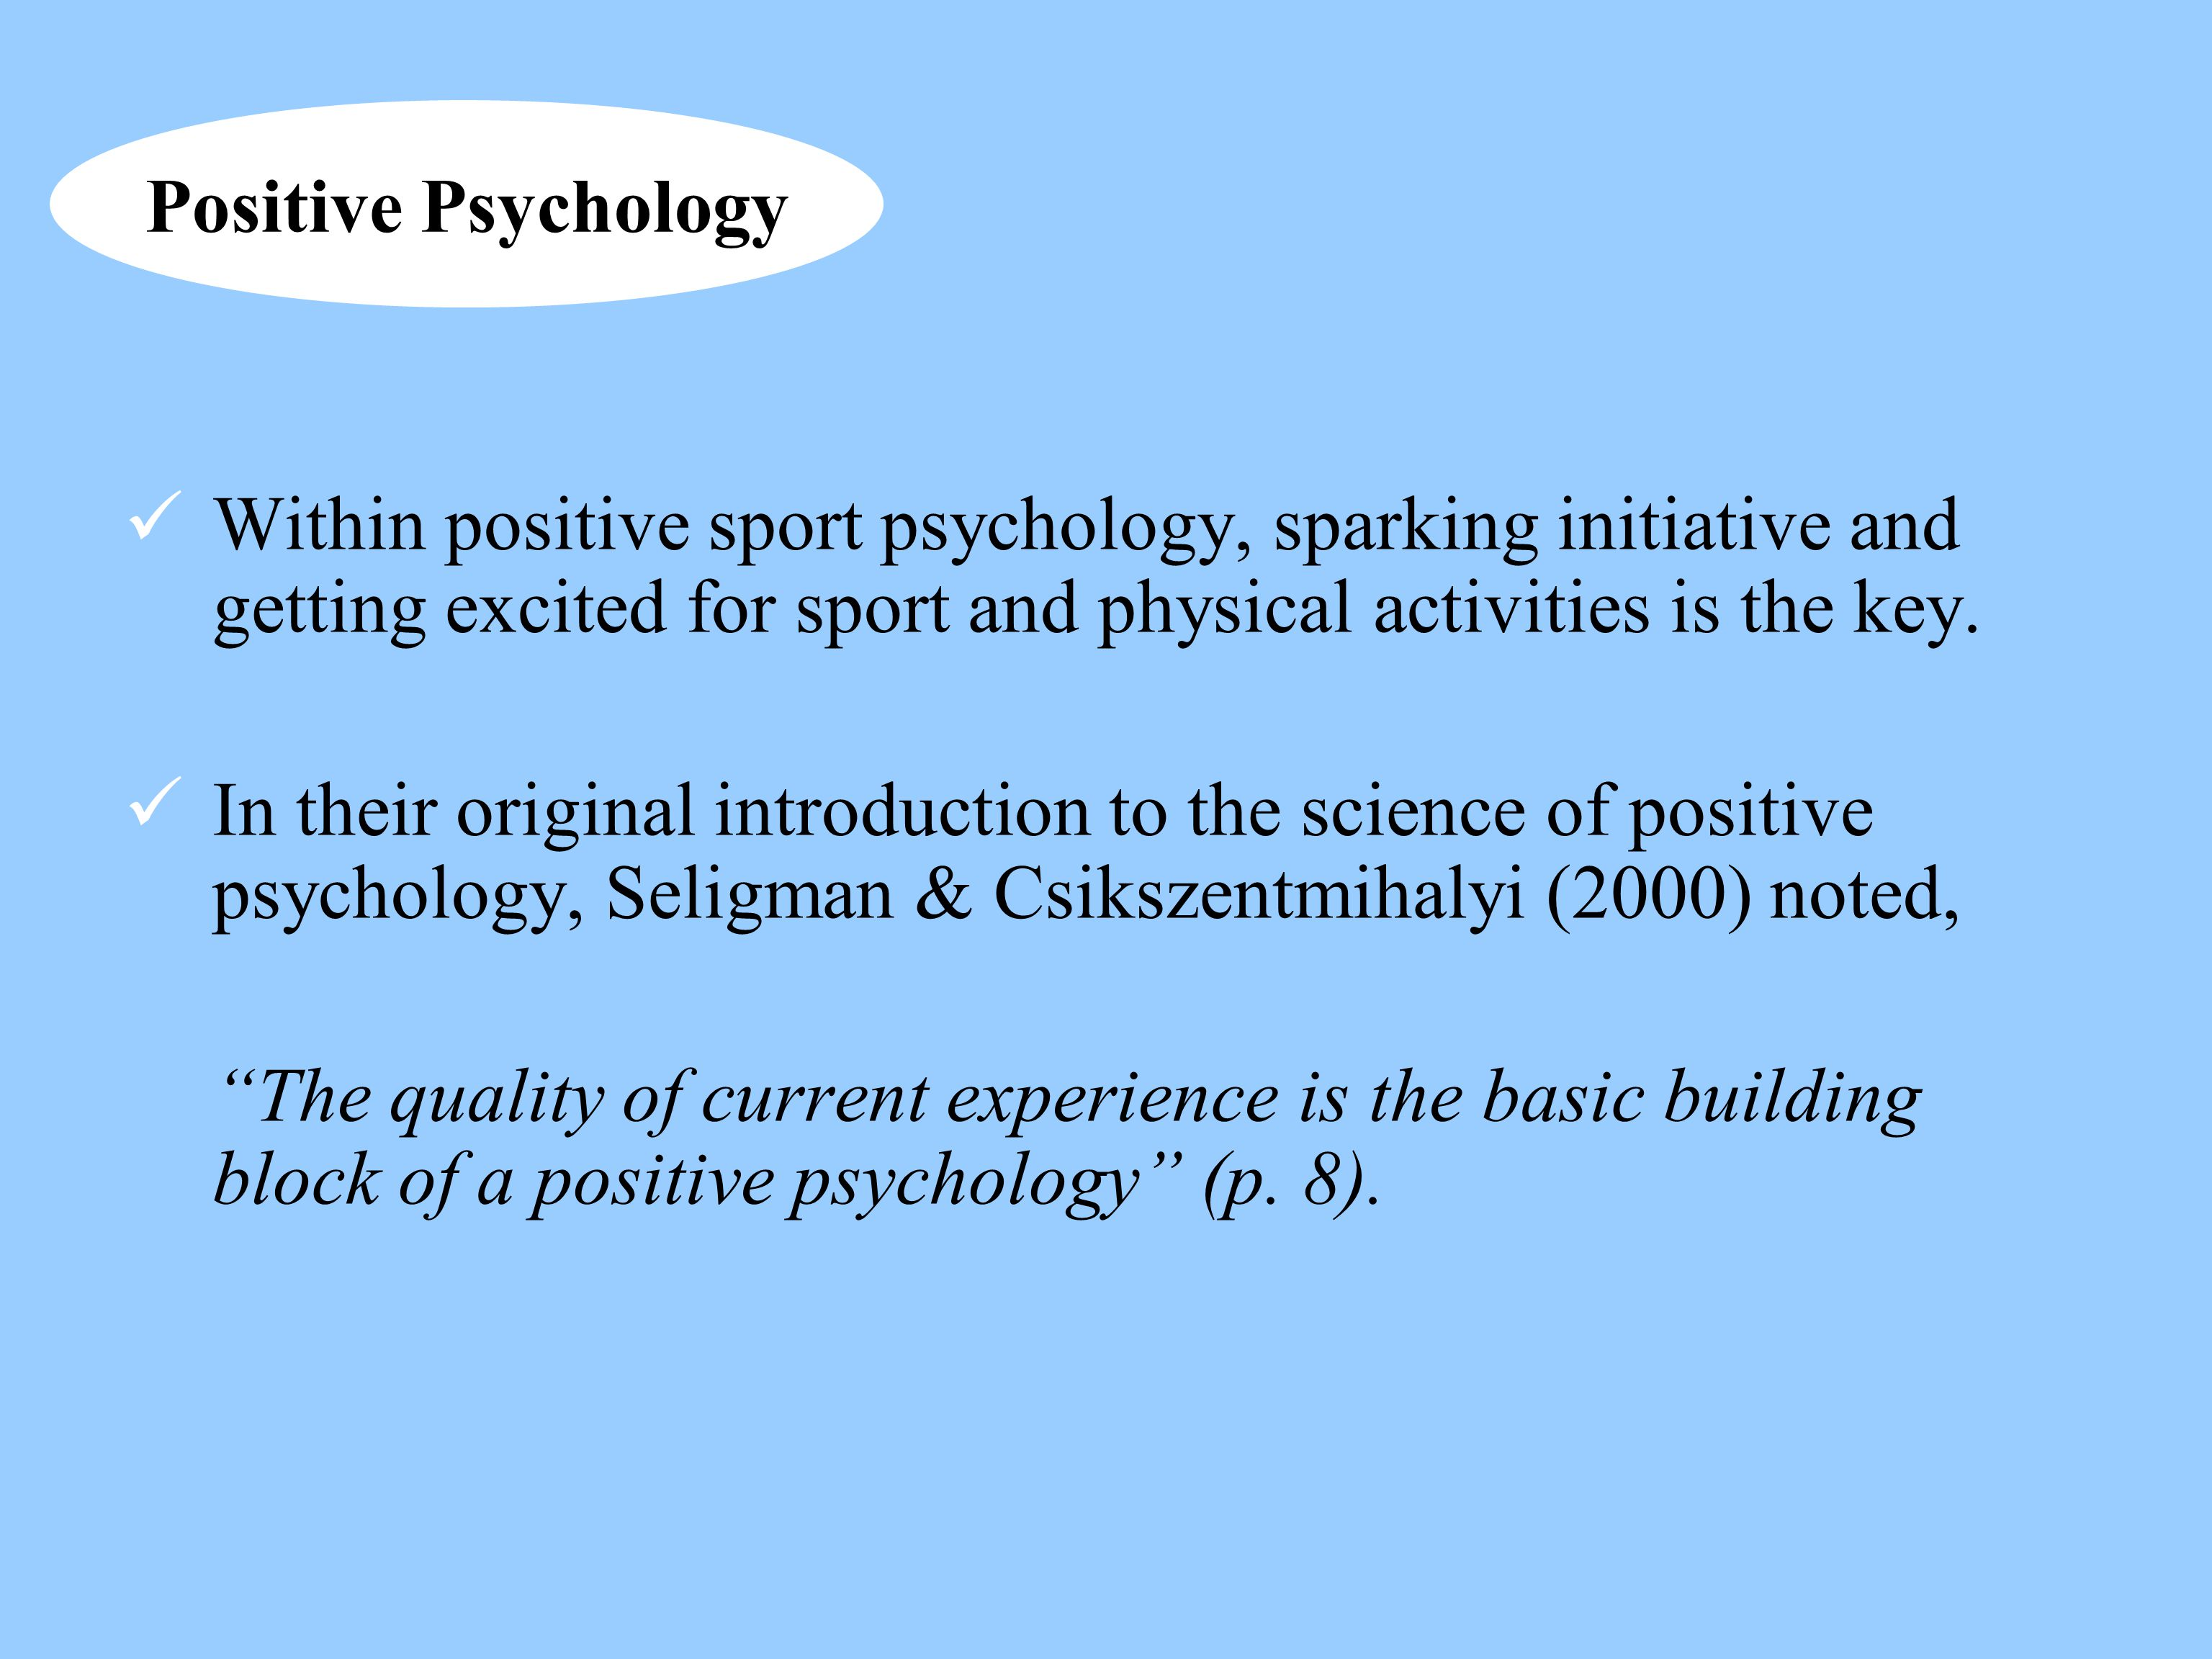 Within positive sport psychology, sparking initiative and getting excited for sport and physical activities is the key. In their original introduction